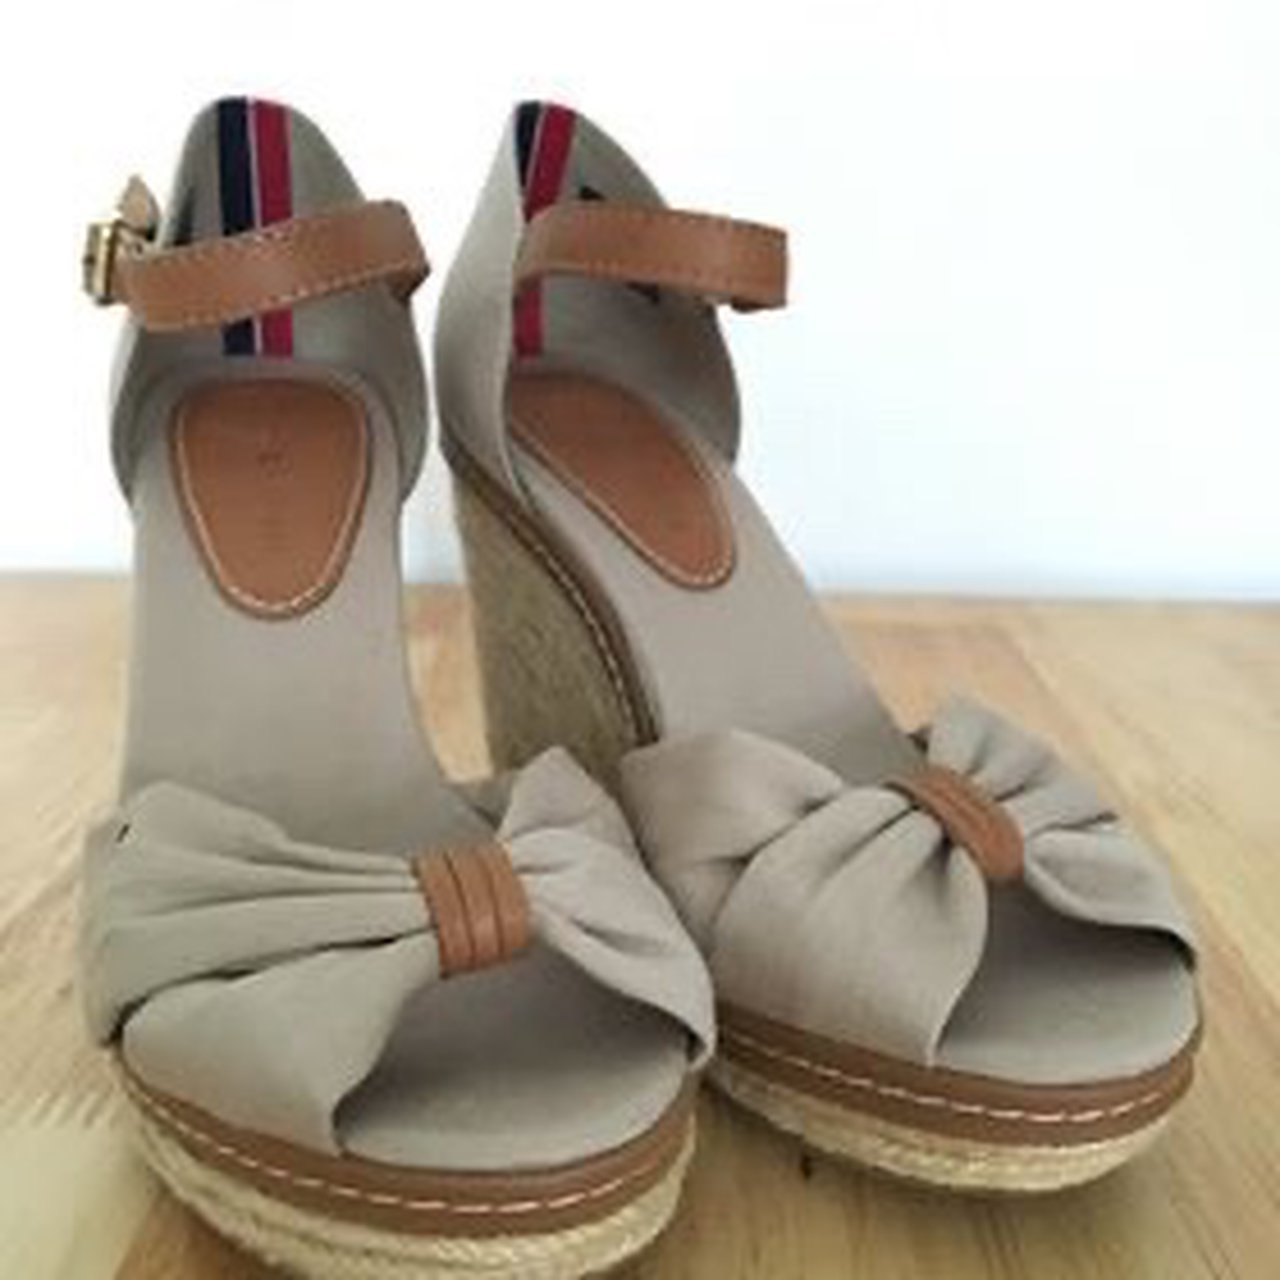 Tommy Hilfiger Iconic Espadrille Wedge